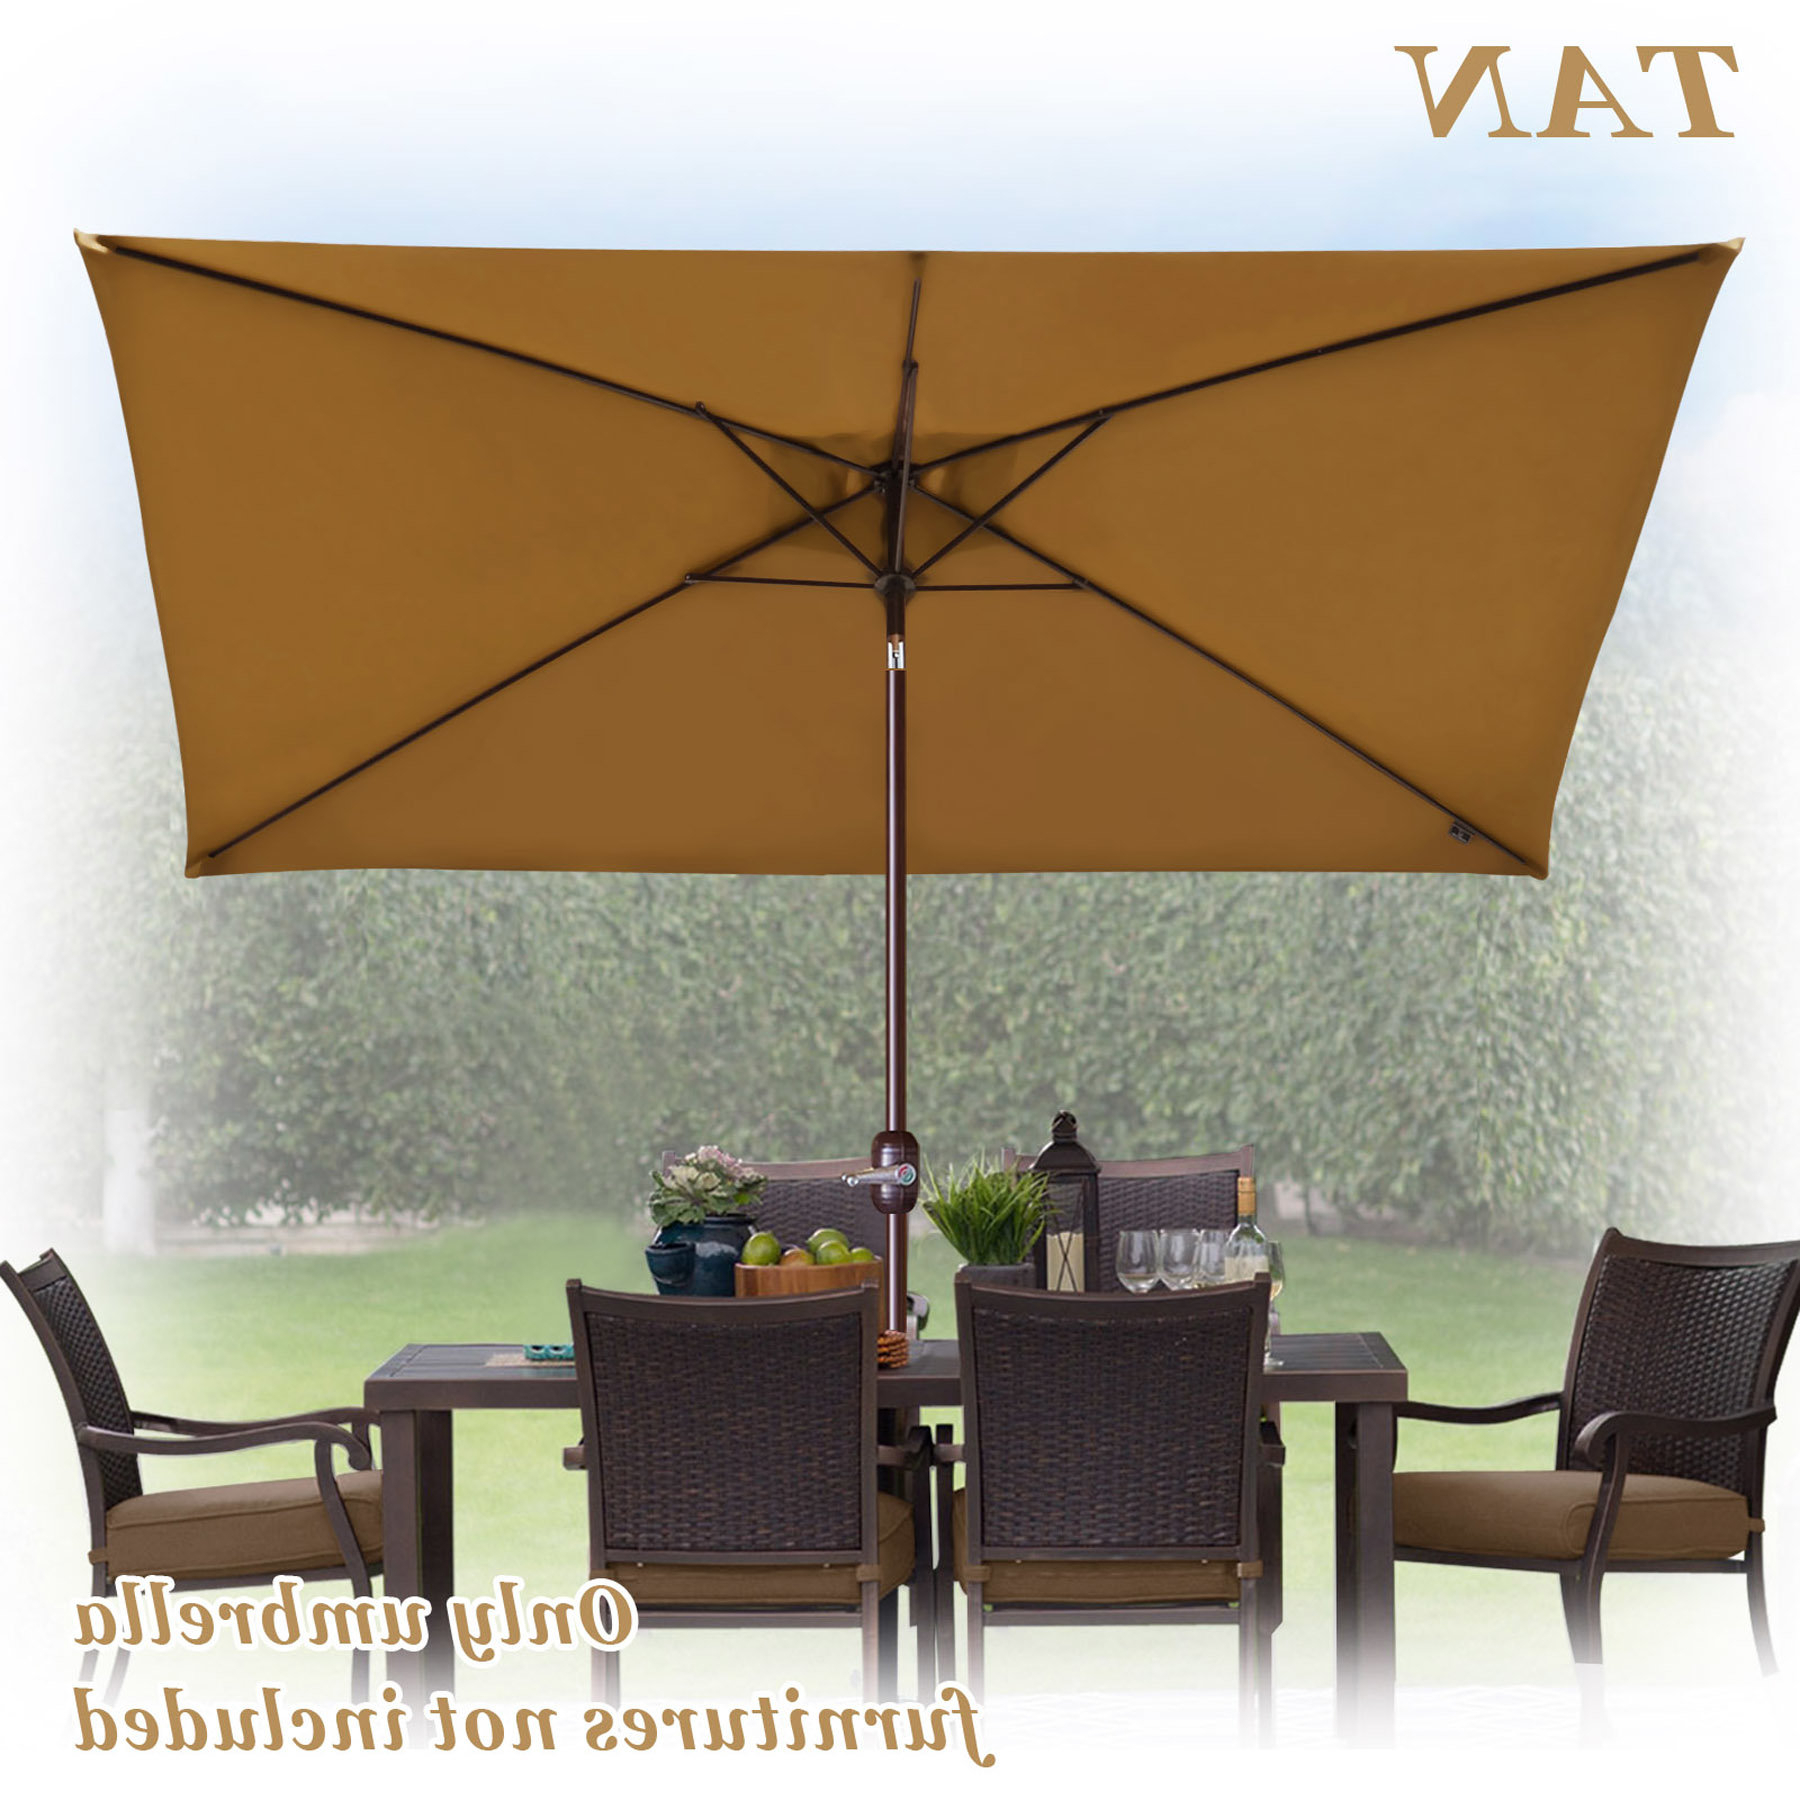 Bickford Outdoor Garden Patio Market Umbrella Throughout Current Gries Rectangular Market Umbrellas (Gallery 12 of 20)